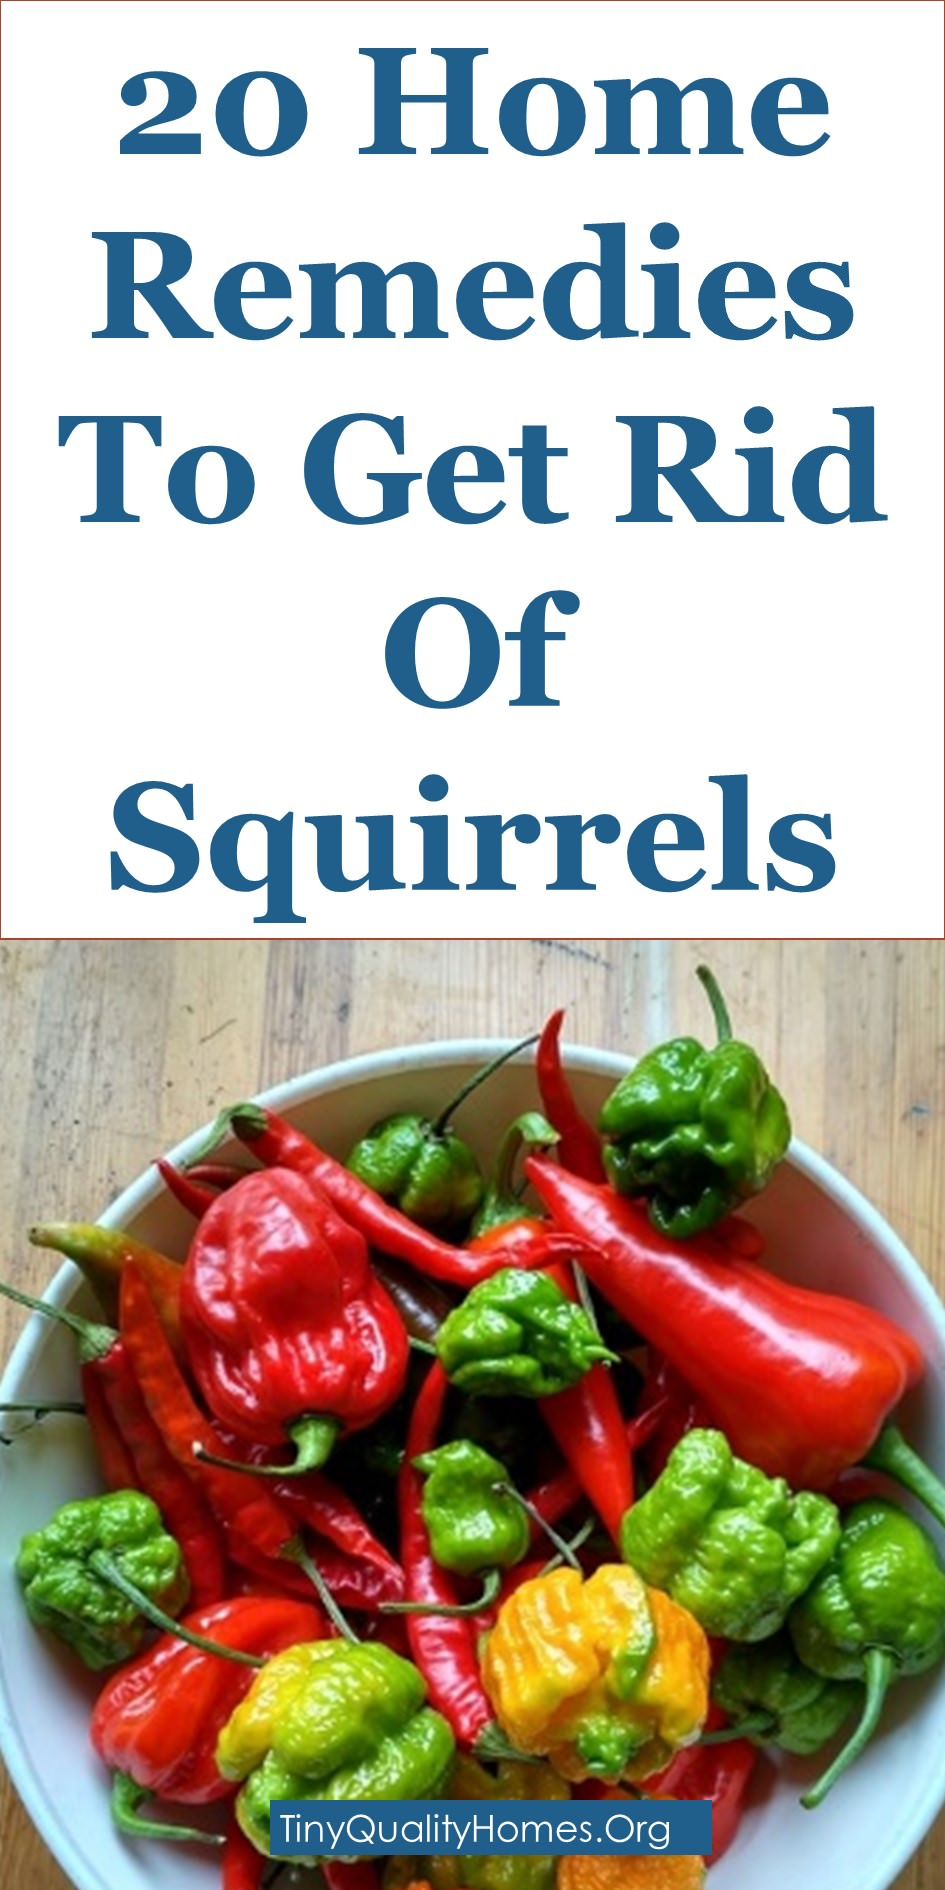 20 Home Remedies Squirrel Repellents To Get Rid Of Squirrels for dimensions 945 X 1890